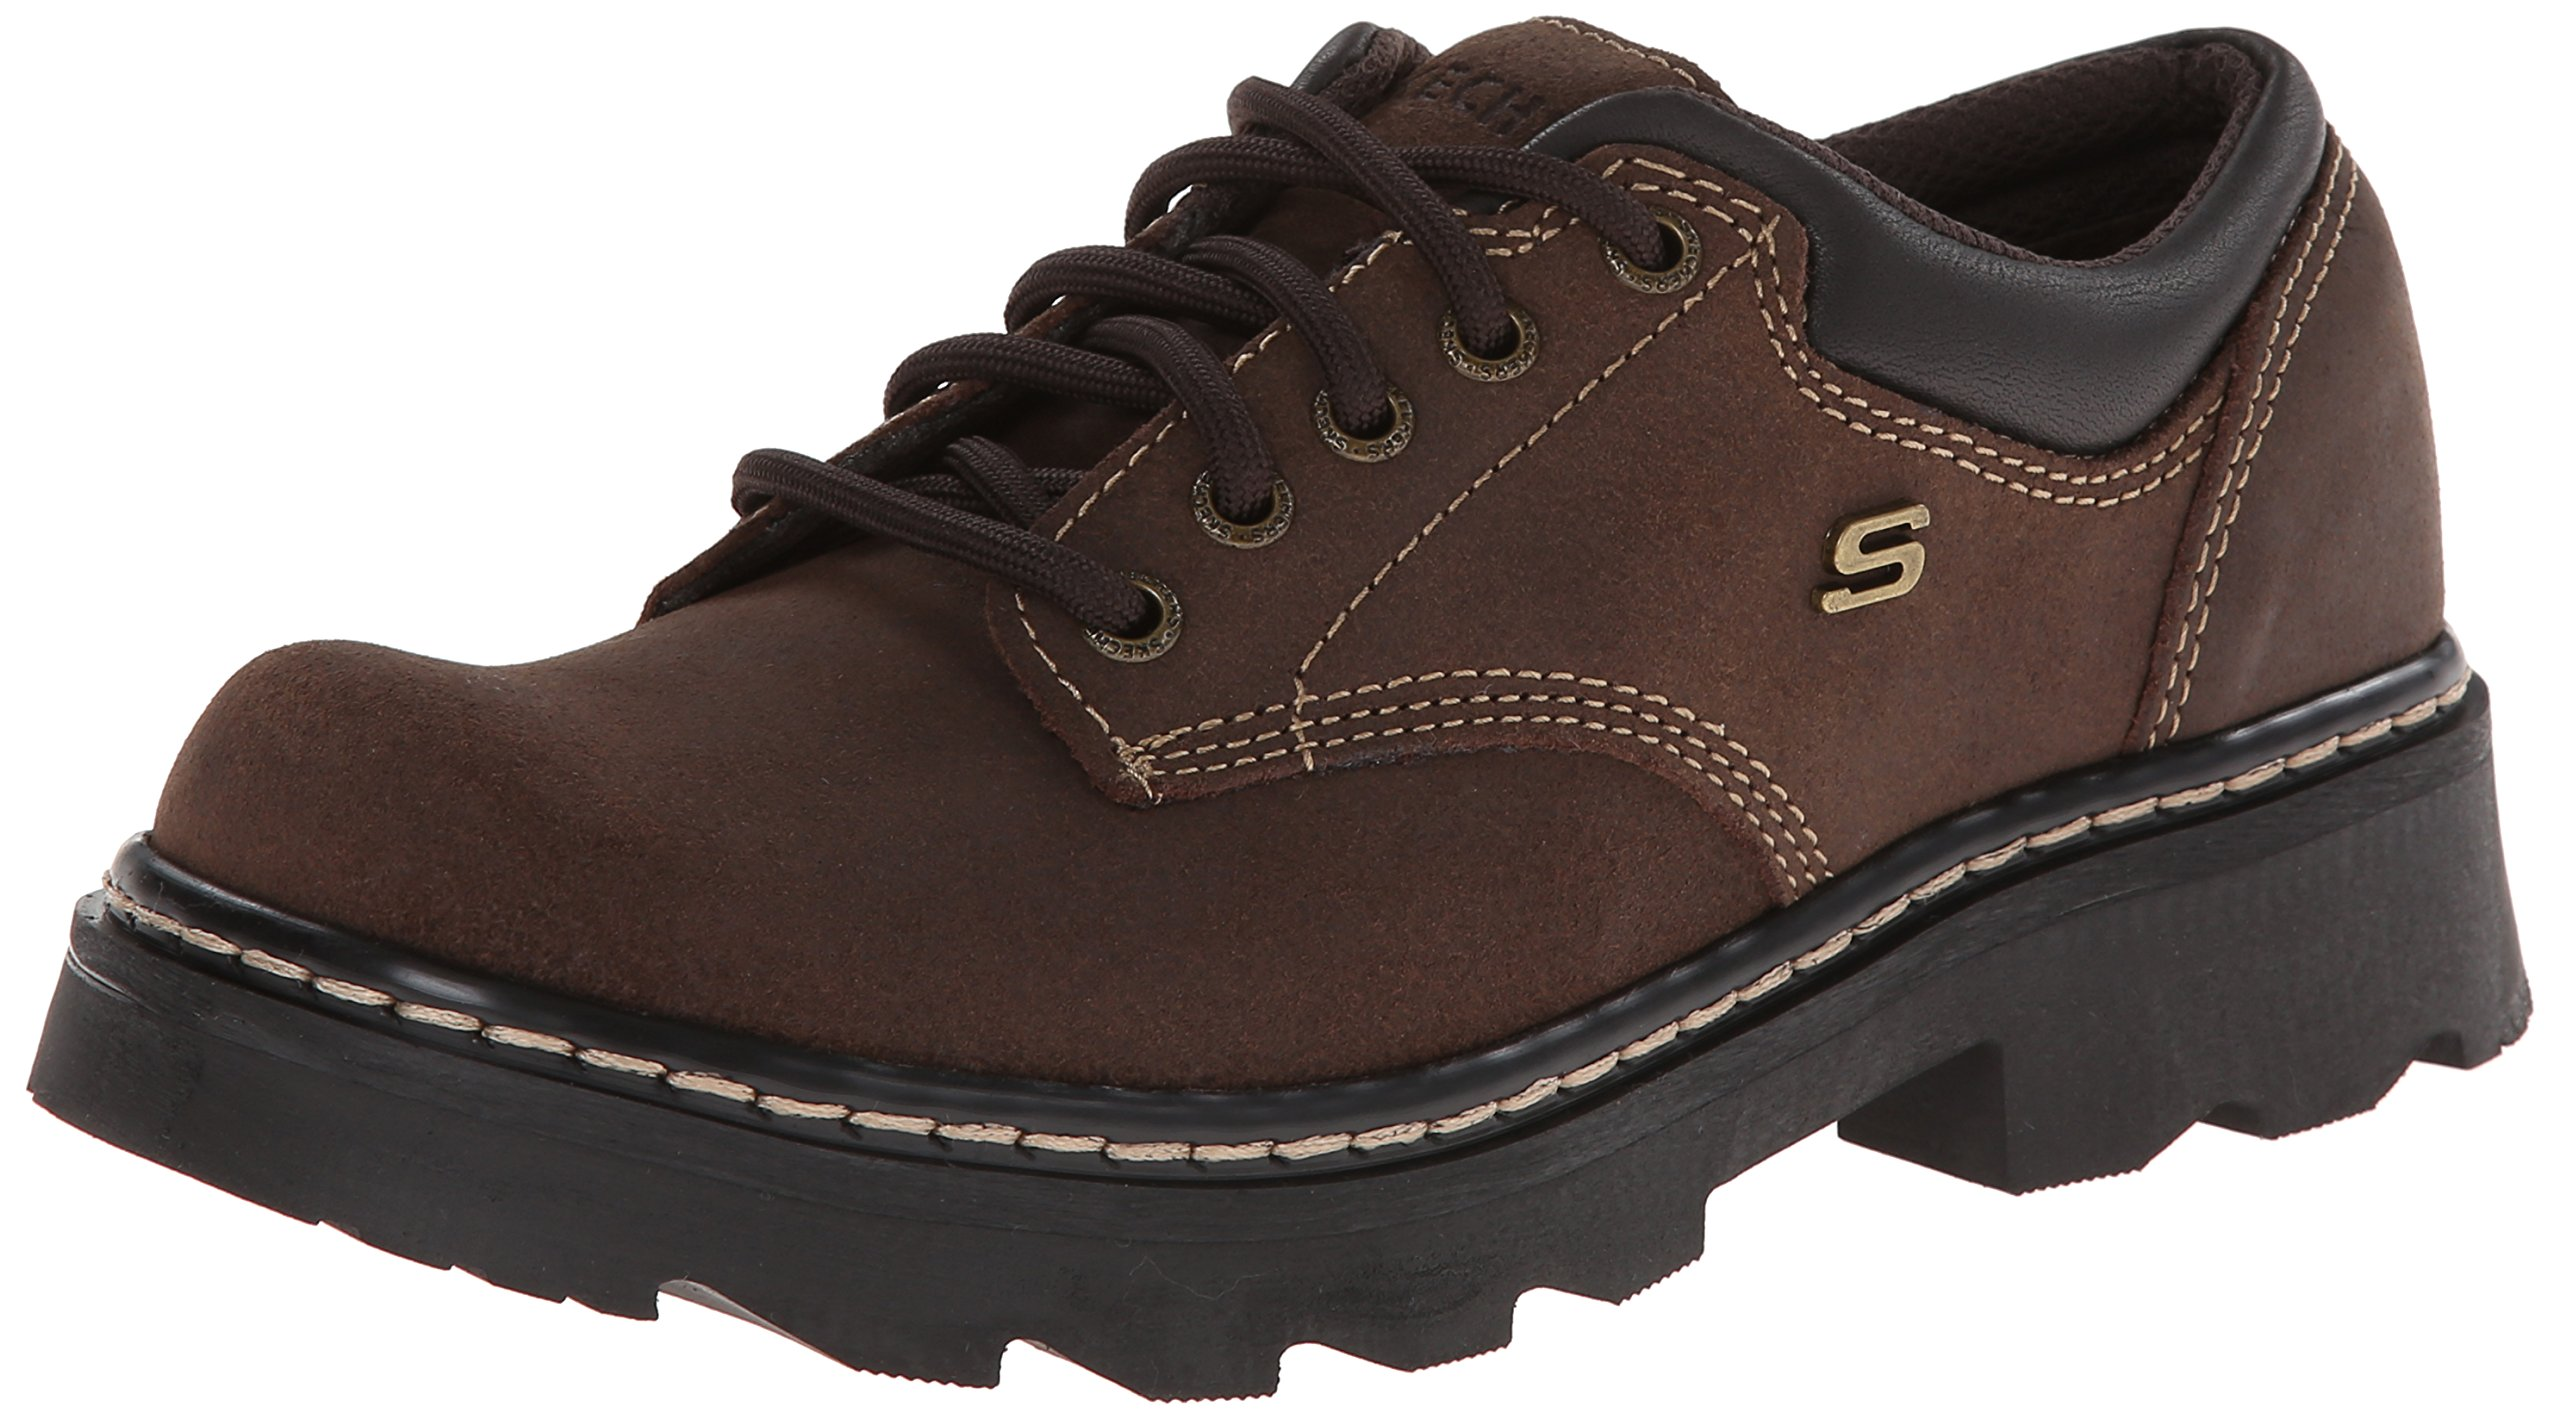 ویکالا · خرید  اصل اورجینال · خرید از آمازون · Skechers Women's Parties-Mate Oxford,Chocolate Suede Leather,8 M US wekala · ویکالا